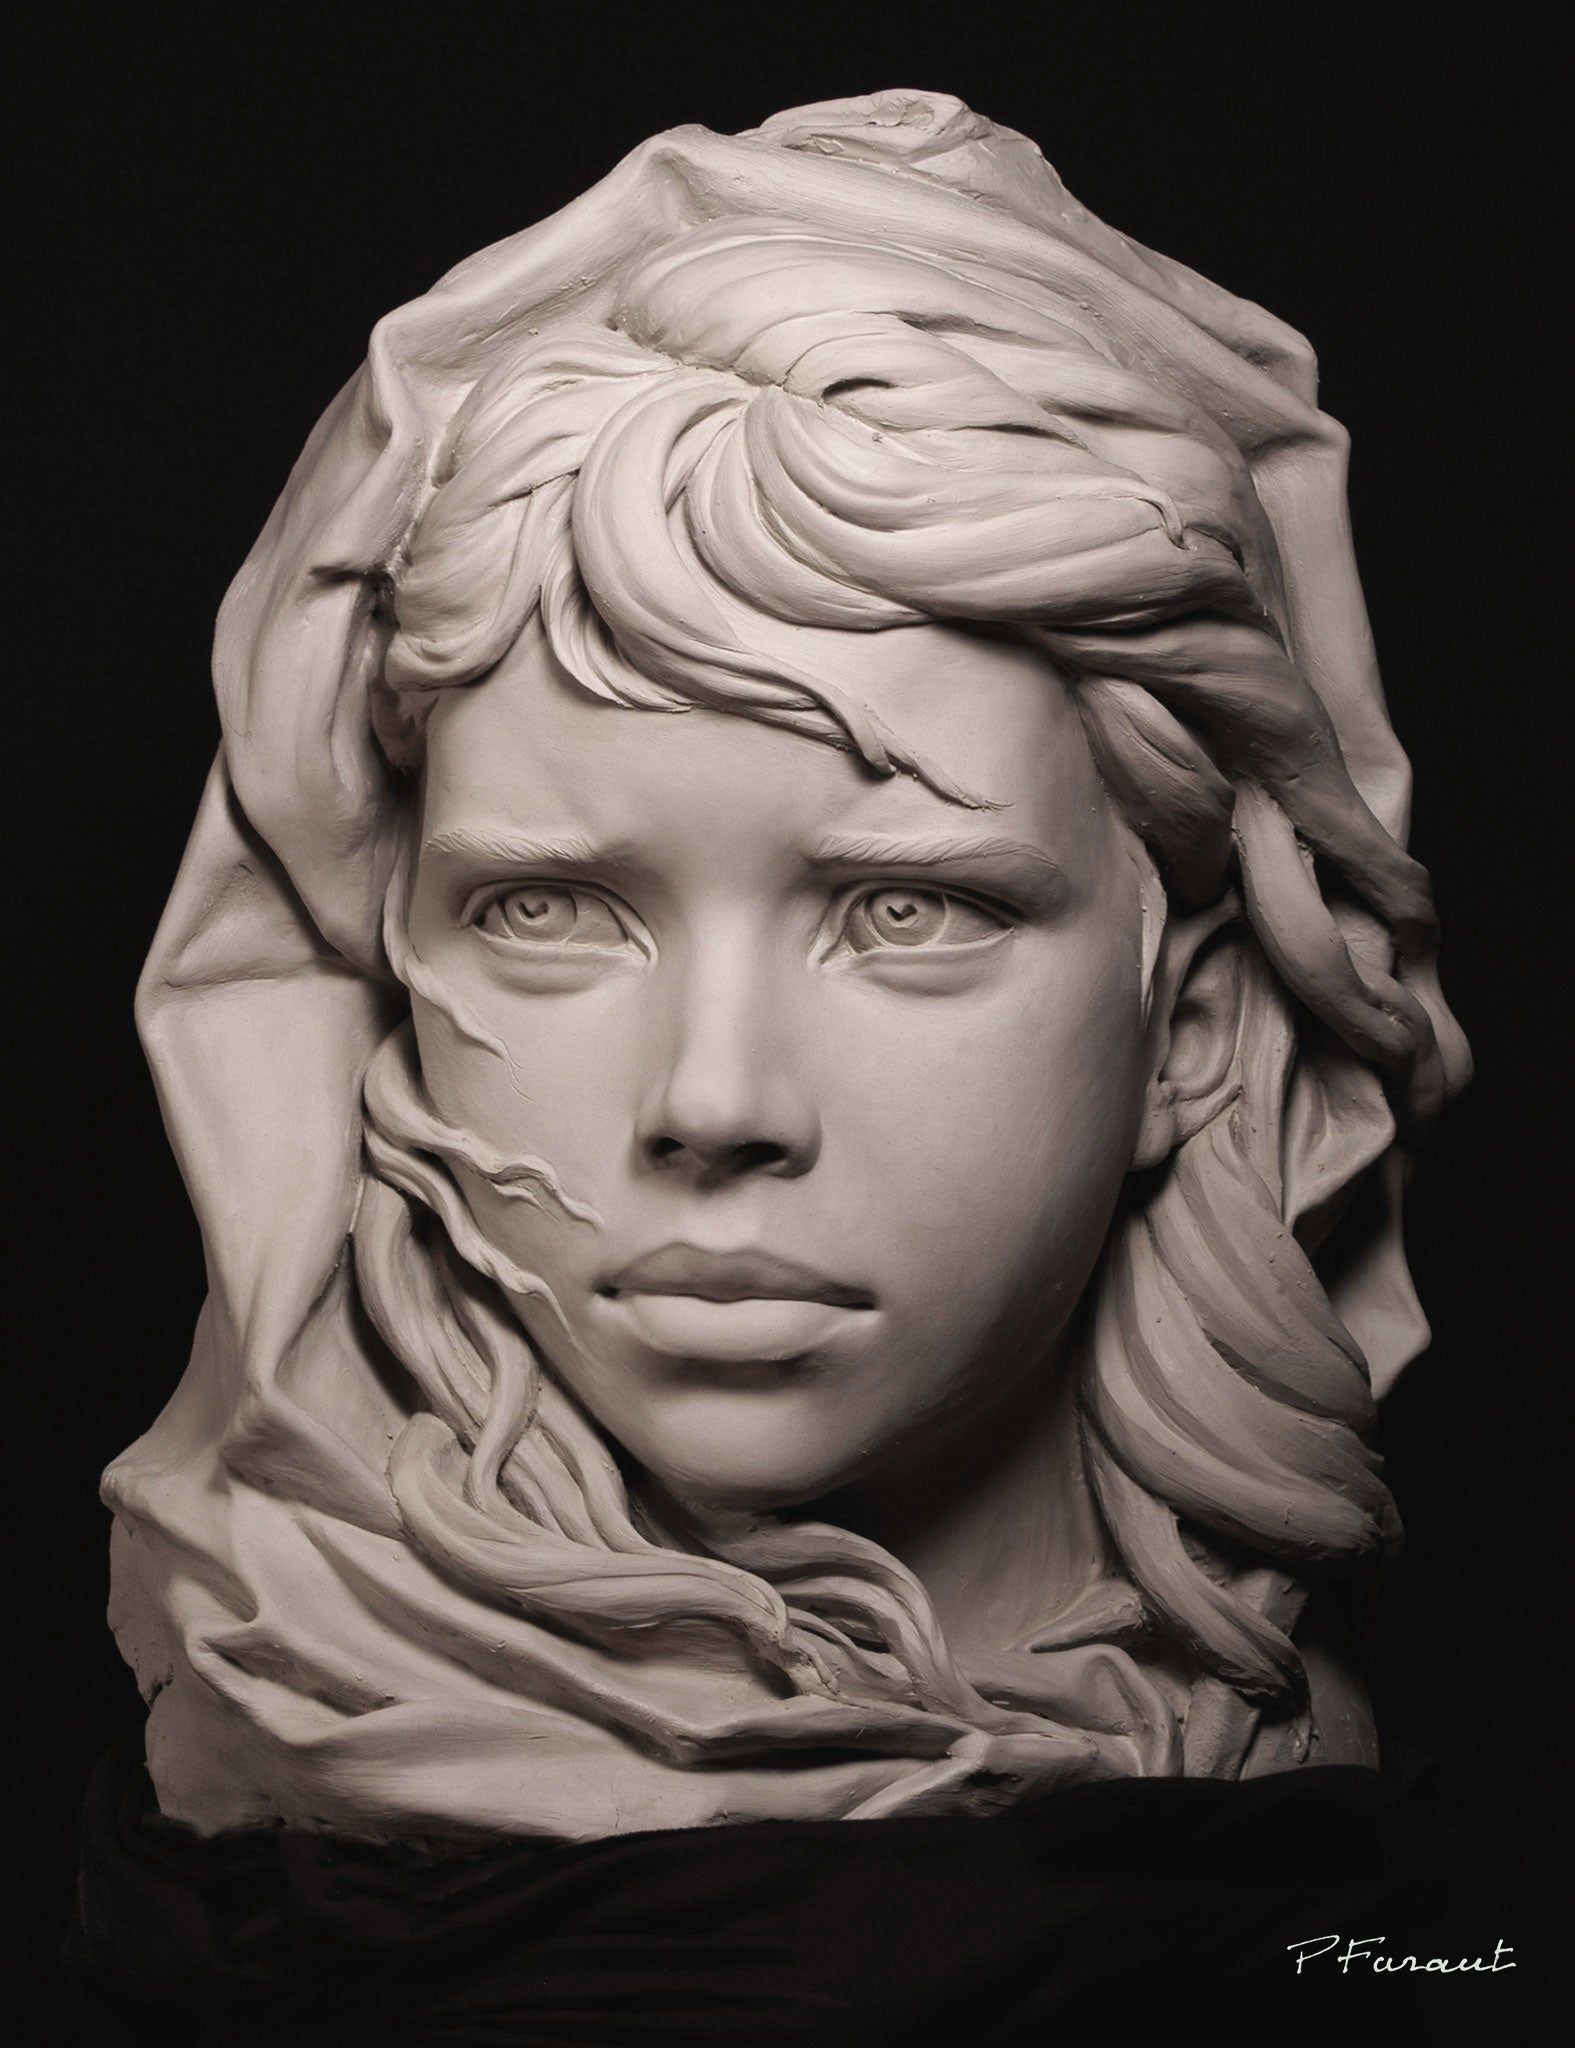 The Fisherman's Daughter girl with hair blowing in the wind clay portrait by Philippe Faraut